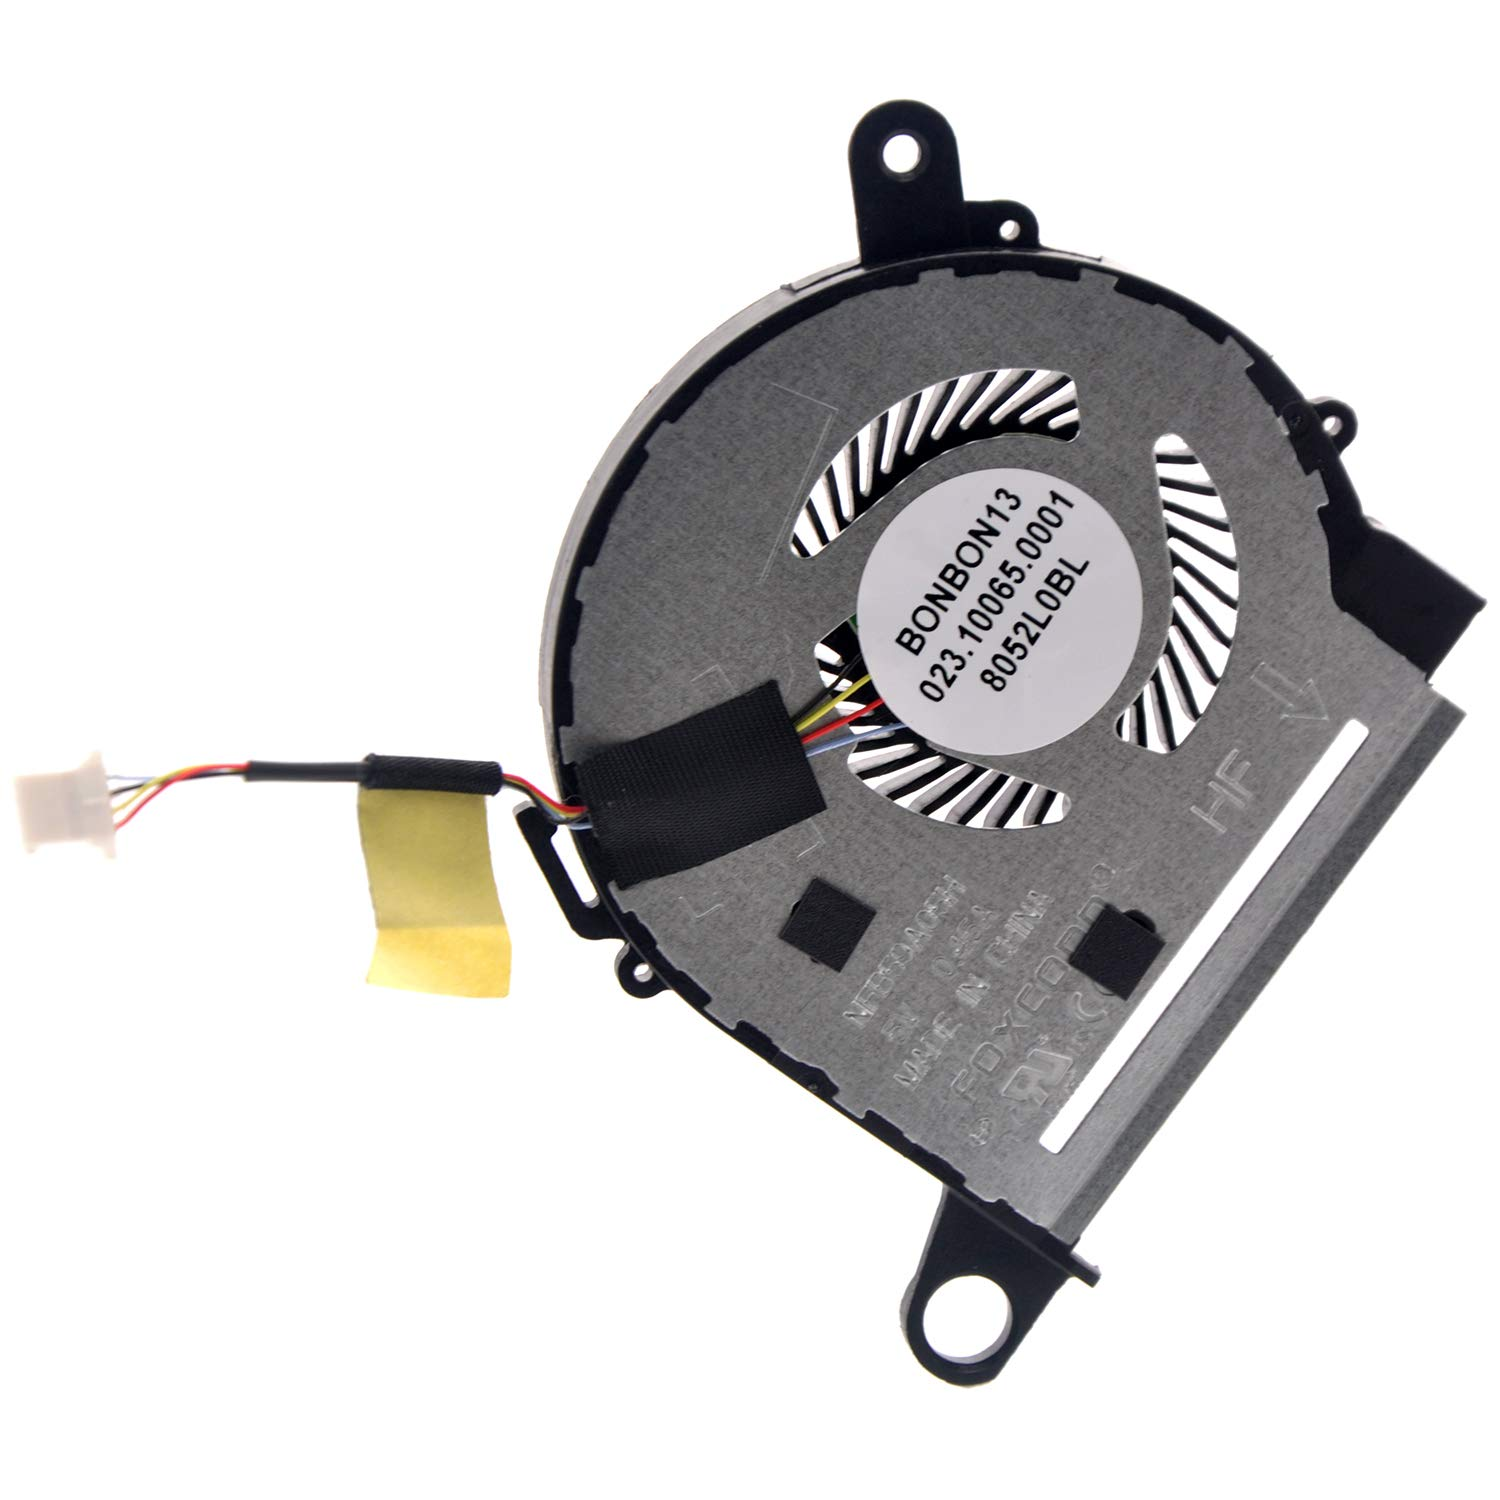 Deal4GO Replacement CPU Cooling Fan for HP Pavilion X360 13-U M3-U CPU Fan BONBON13 855966-001